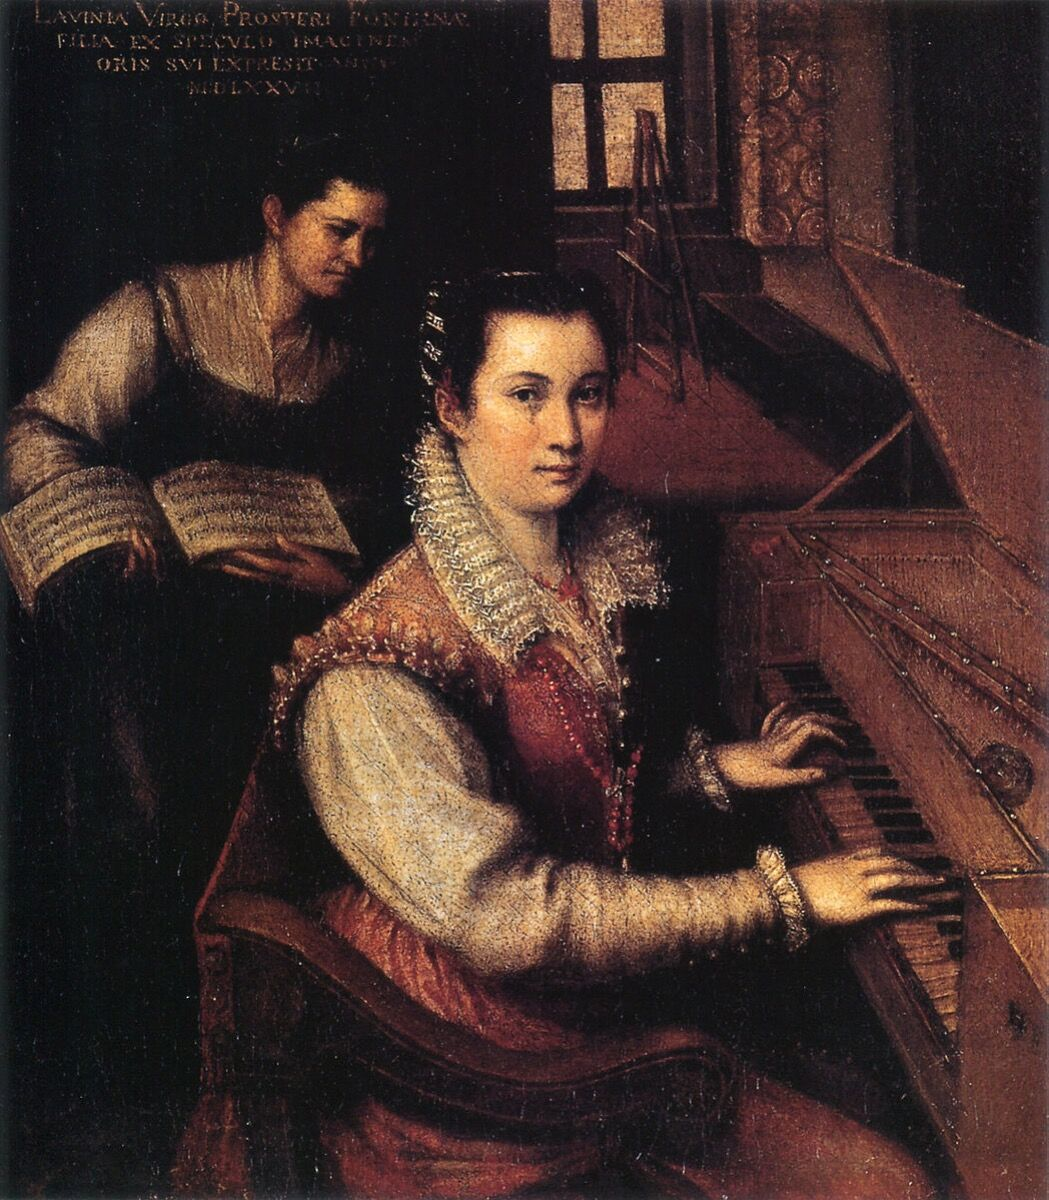 Lavinia Fontana, Self-portrait at the Virginal with a Servant, 1577.